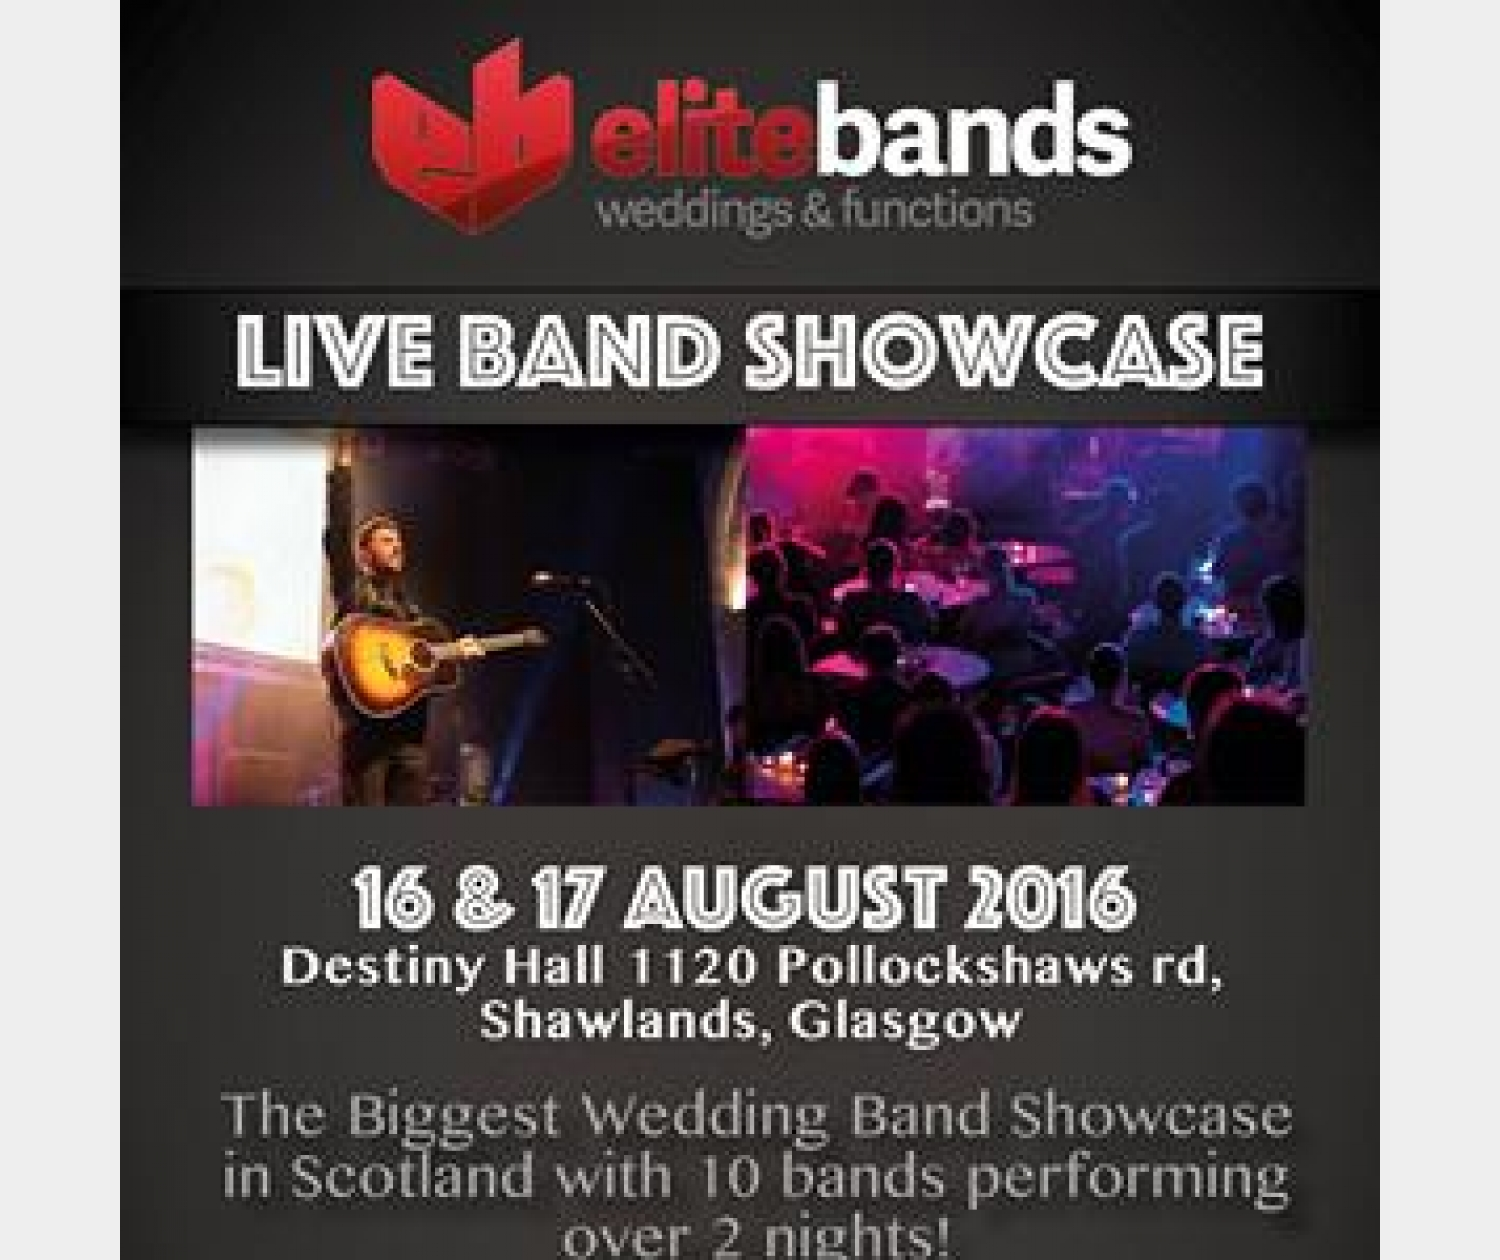 Live Wedding Band Showcase!